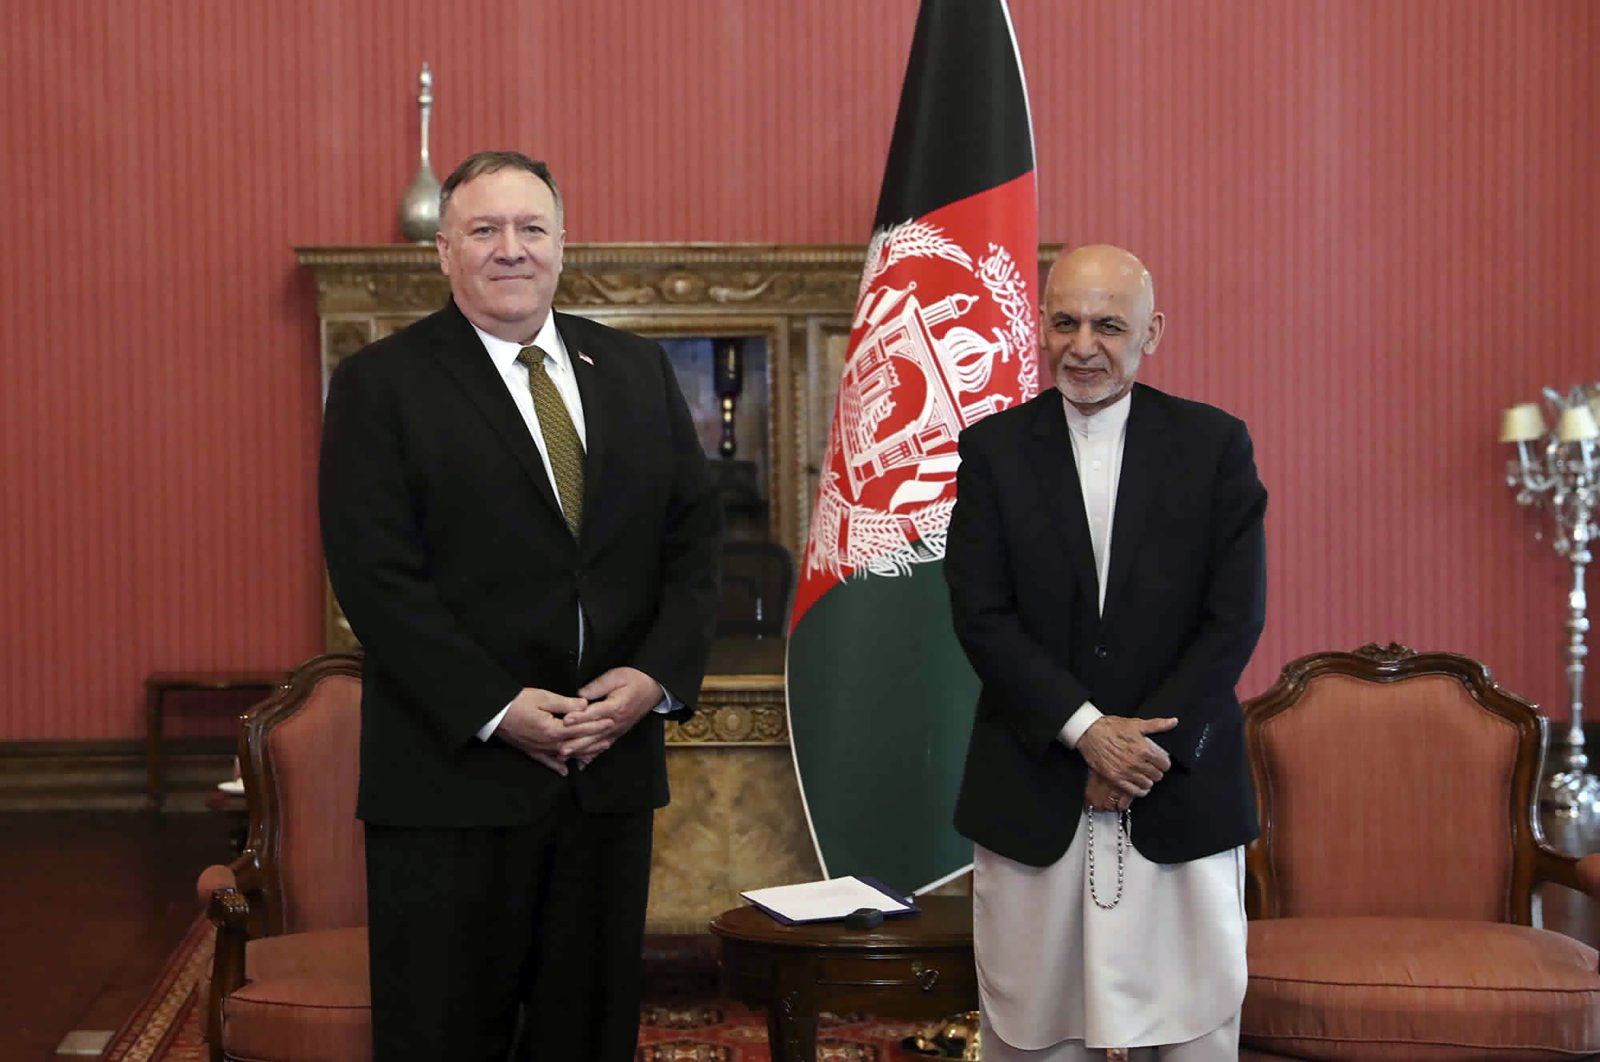 U.S. Secretary of State Mike Pompeo, left, stands with Afghan President Ashraf Ghani, at the Presidential Palace in Kabul, Afghanistan, Monday, March 23, 2020. (Afghan Presidential Palace via AP)